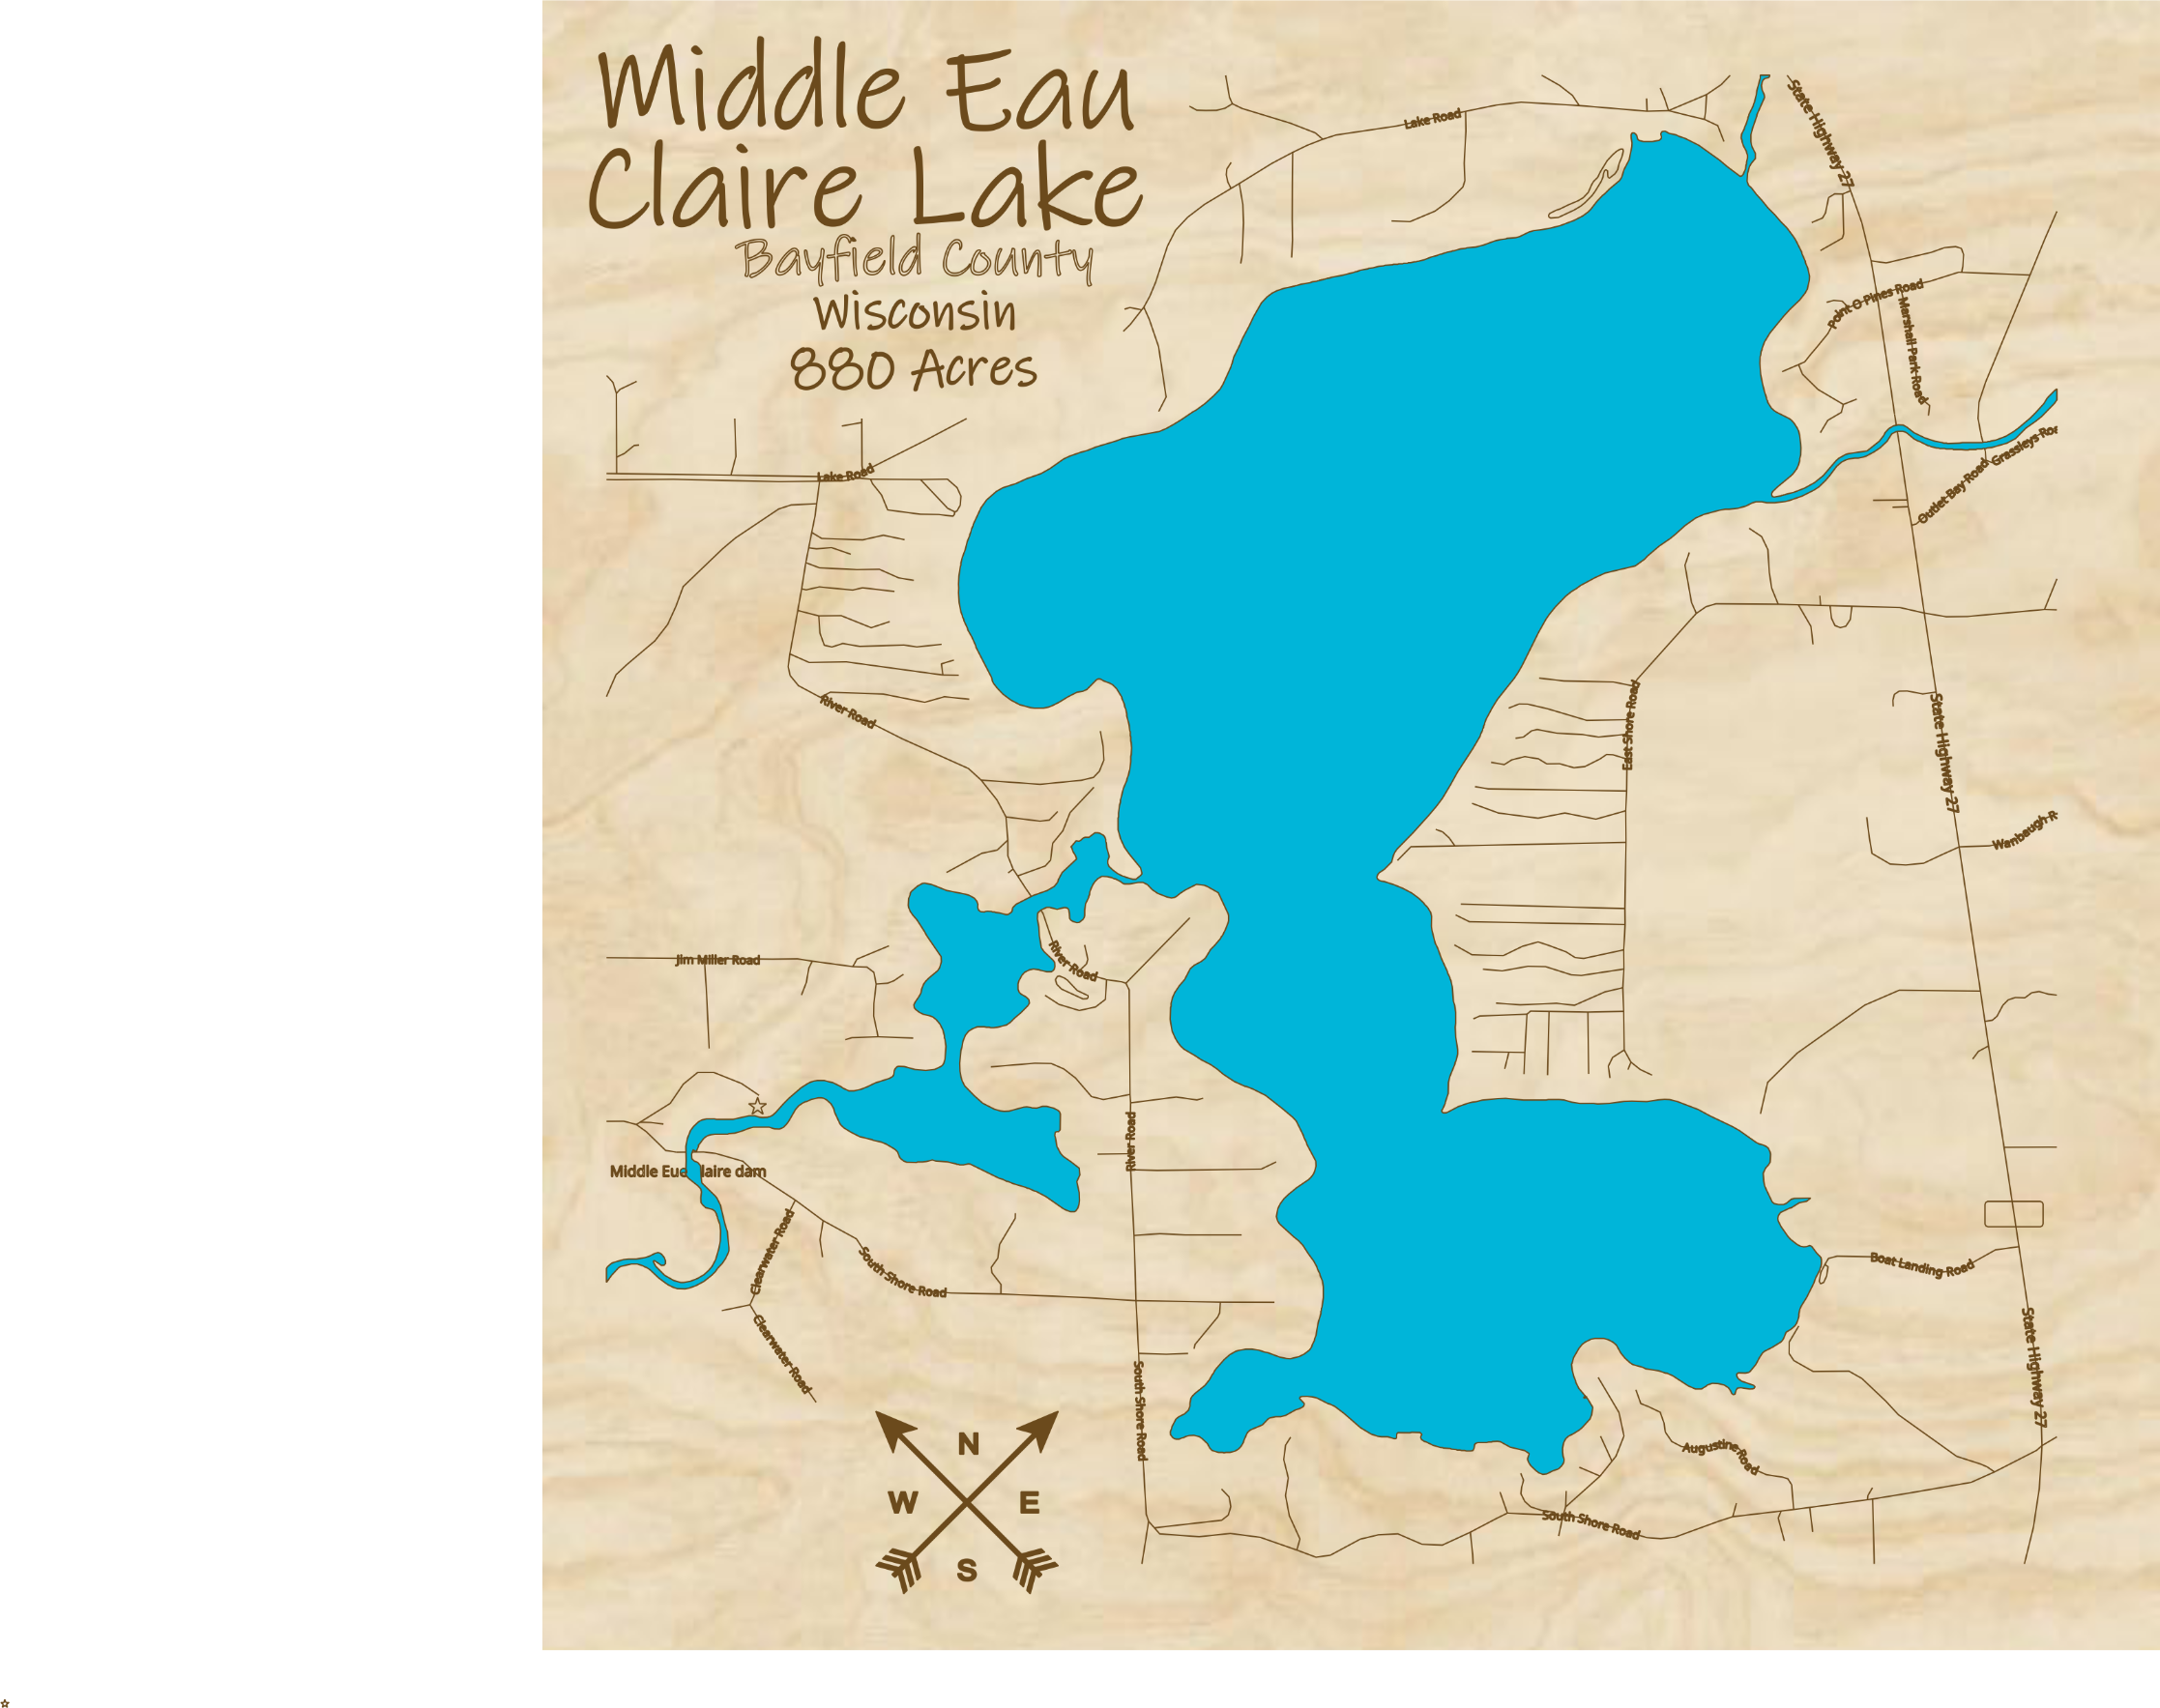 Middle Eau Claire Lake Multi-layered Wood Lake Map